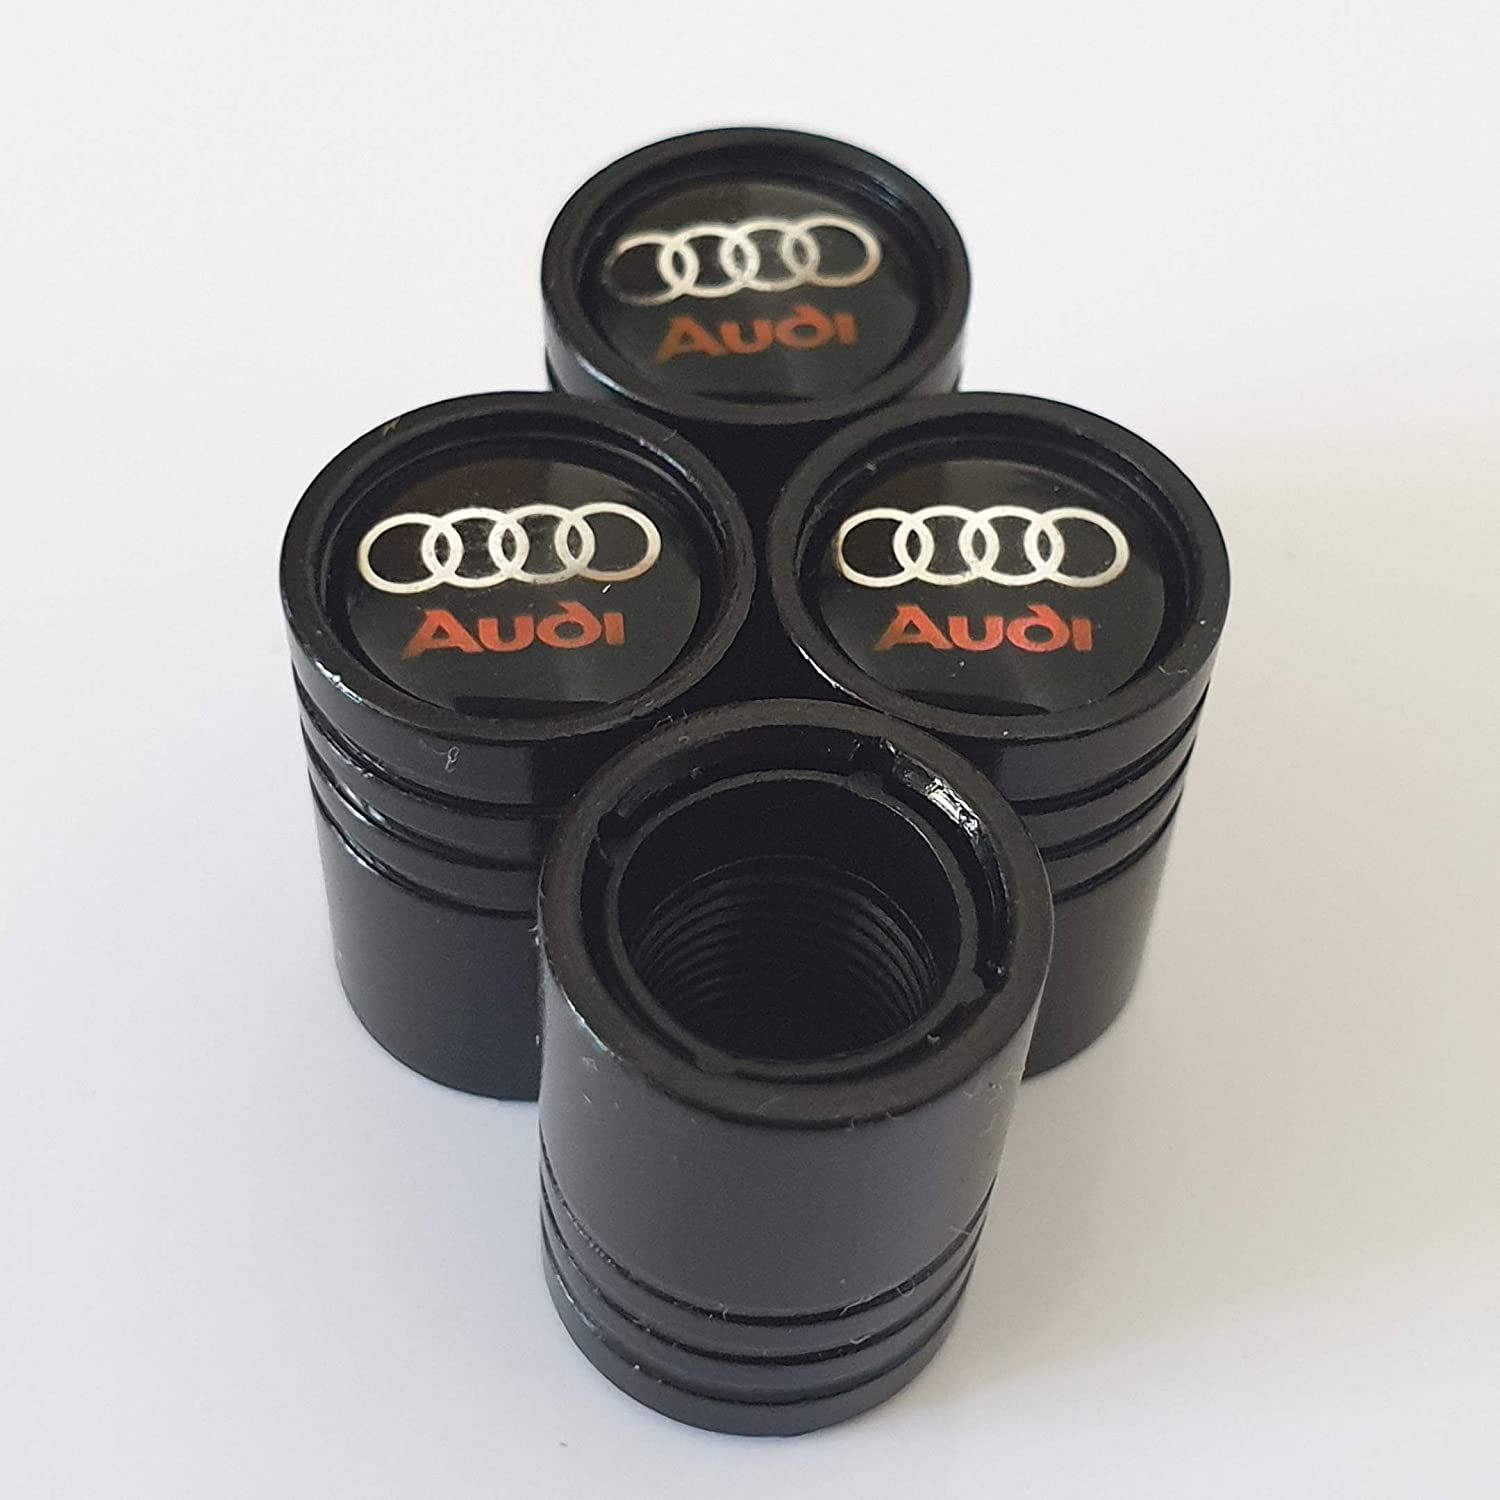 Speed Demons/® AUDI BLACK DELUXE CAR VALVE TYRE DUST CAP EXCLUSIVE TO US A1 A3 A4 A5 A6 A7 A8 Q3 Q5 Q7 TT R8 RS E-TRON S LINE RS4 RS5 RS6